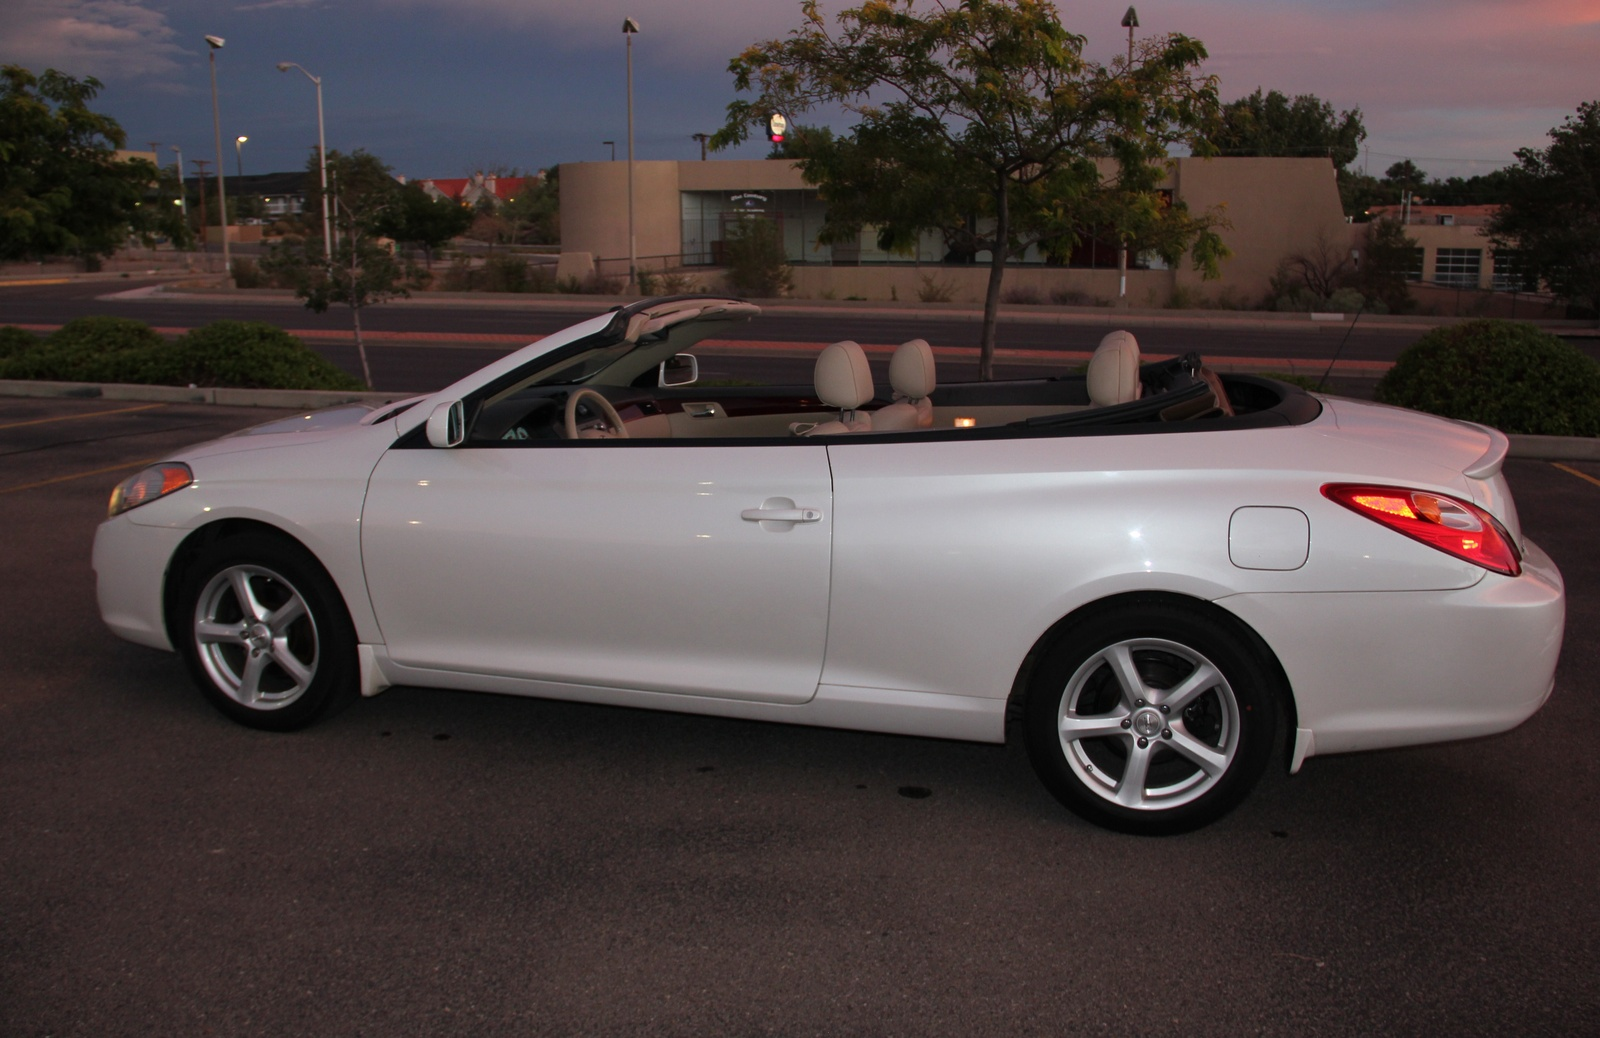 2005 toyota camry solara exterior pictures cargurus. Black Bedroom Furniture Sets. Home Design Ideas